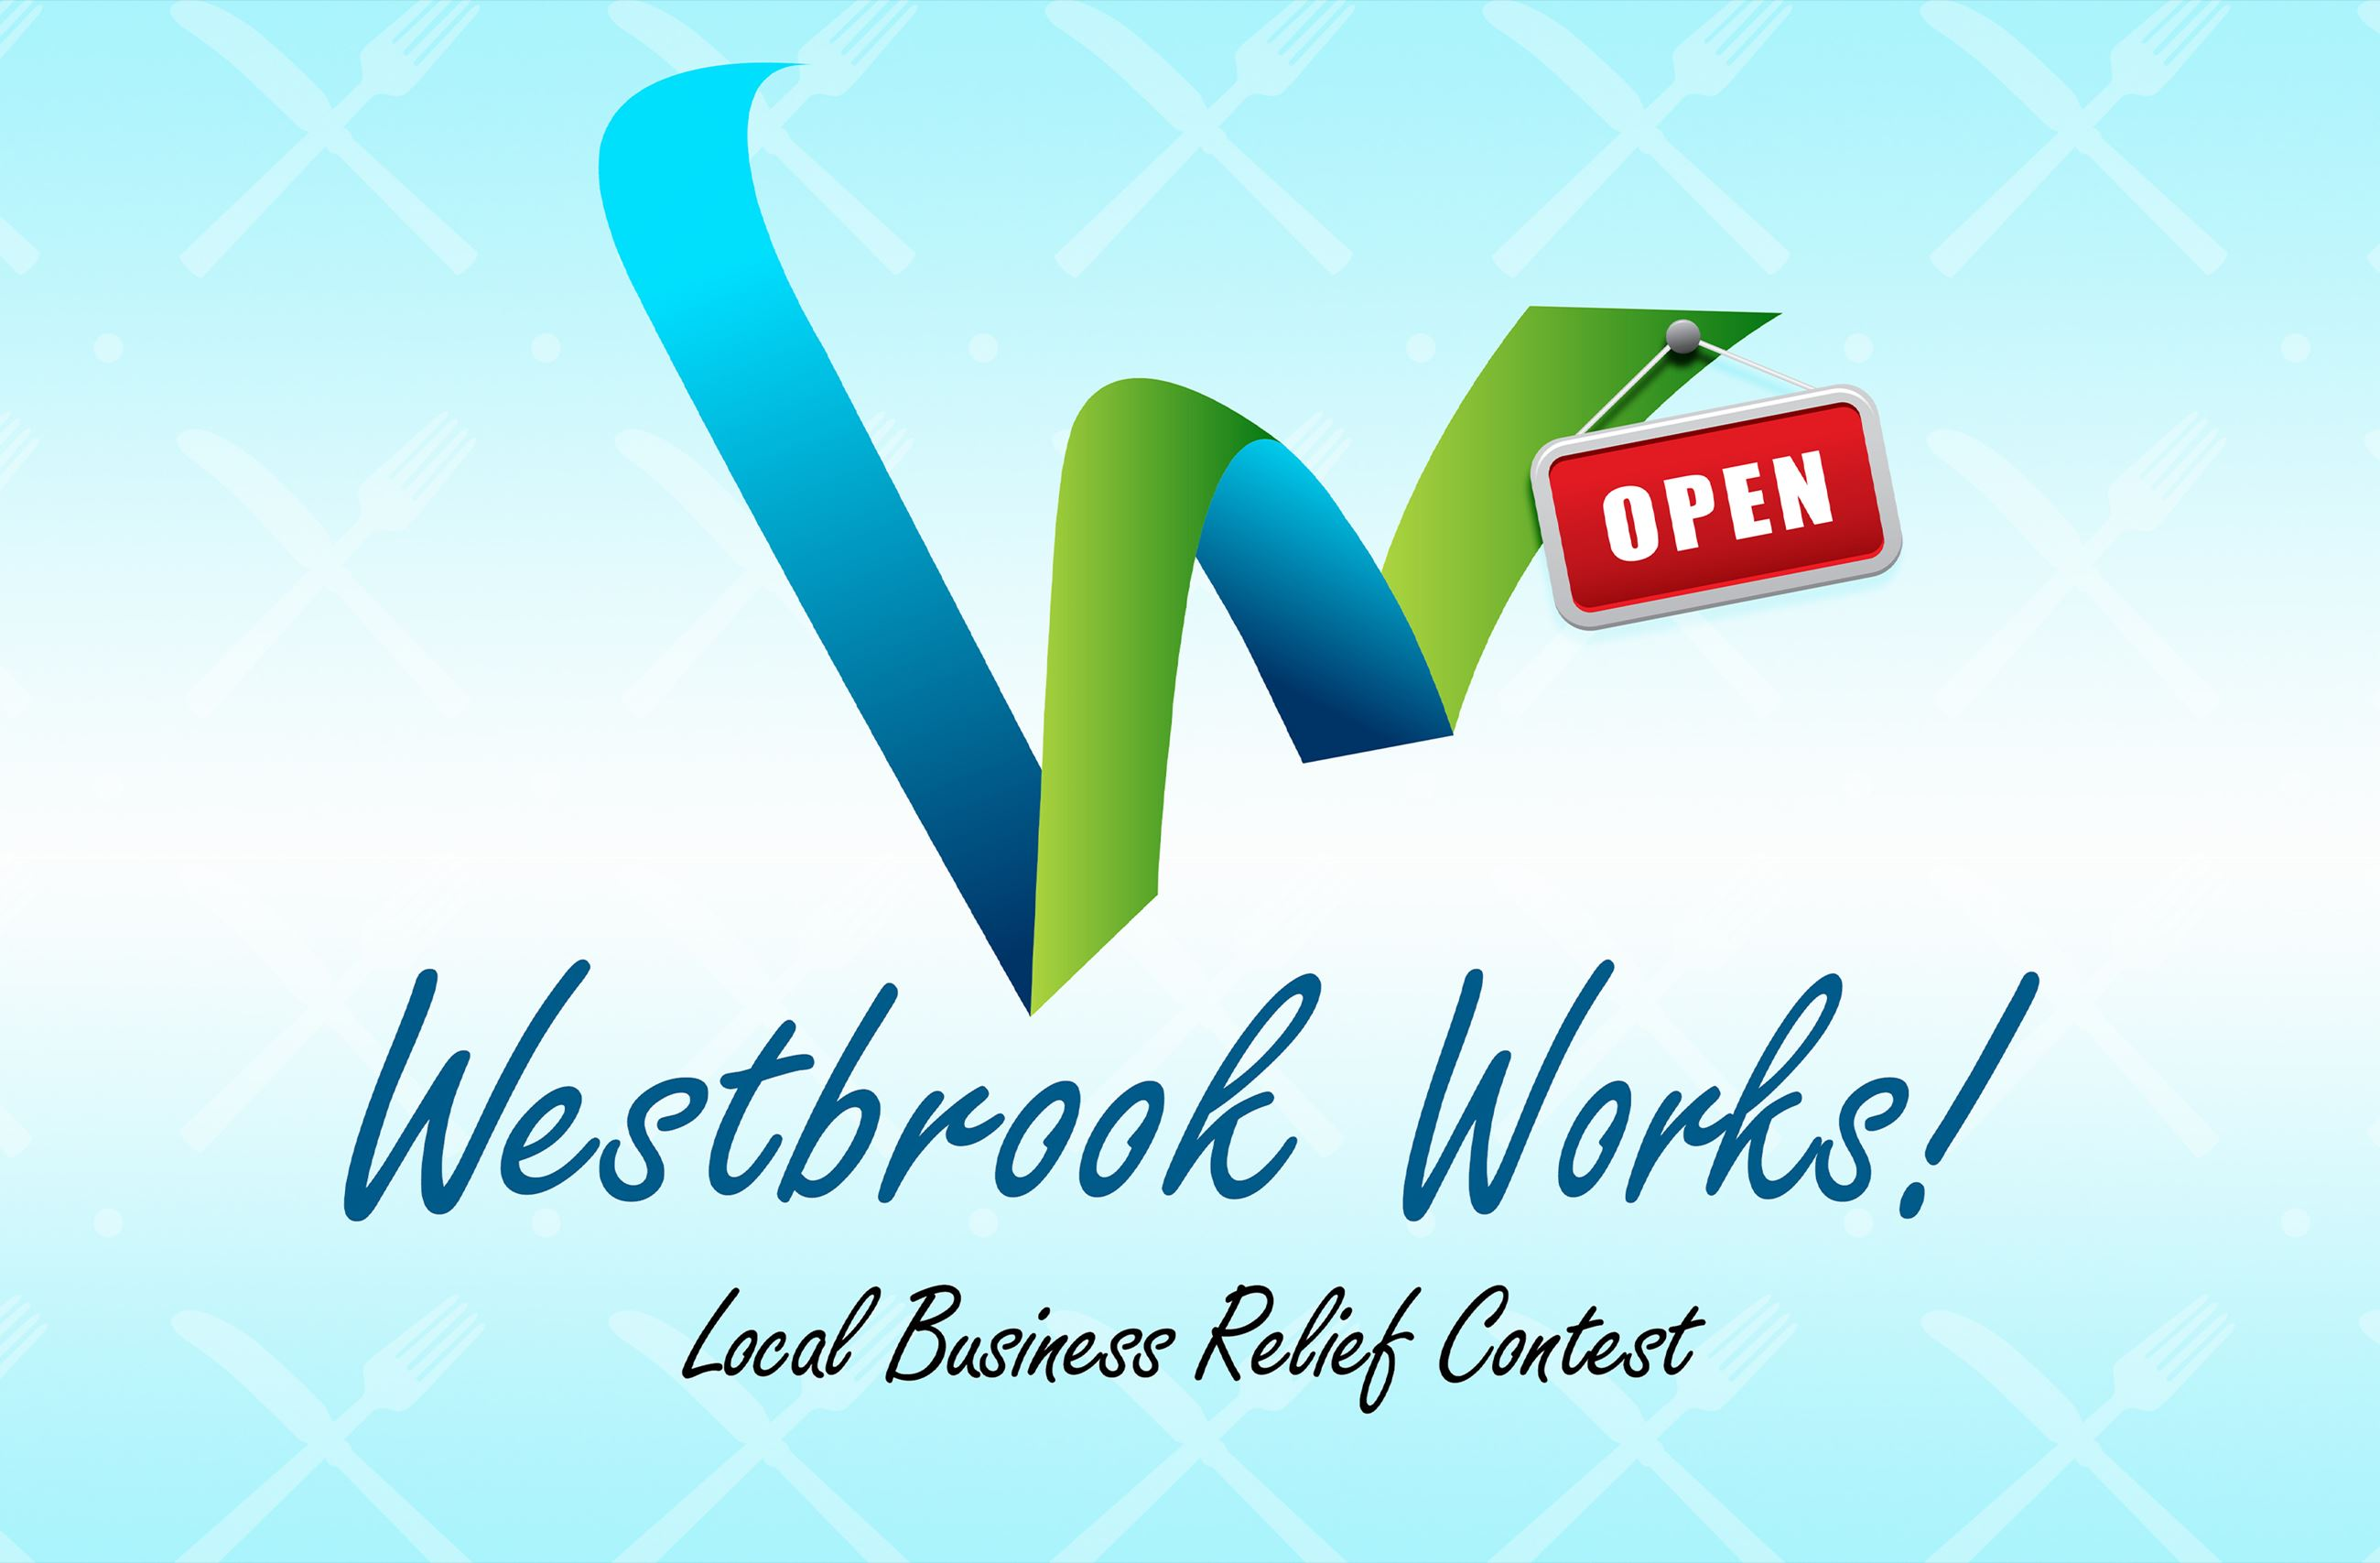 Westbrook Works News Flash